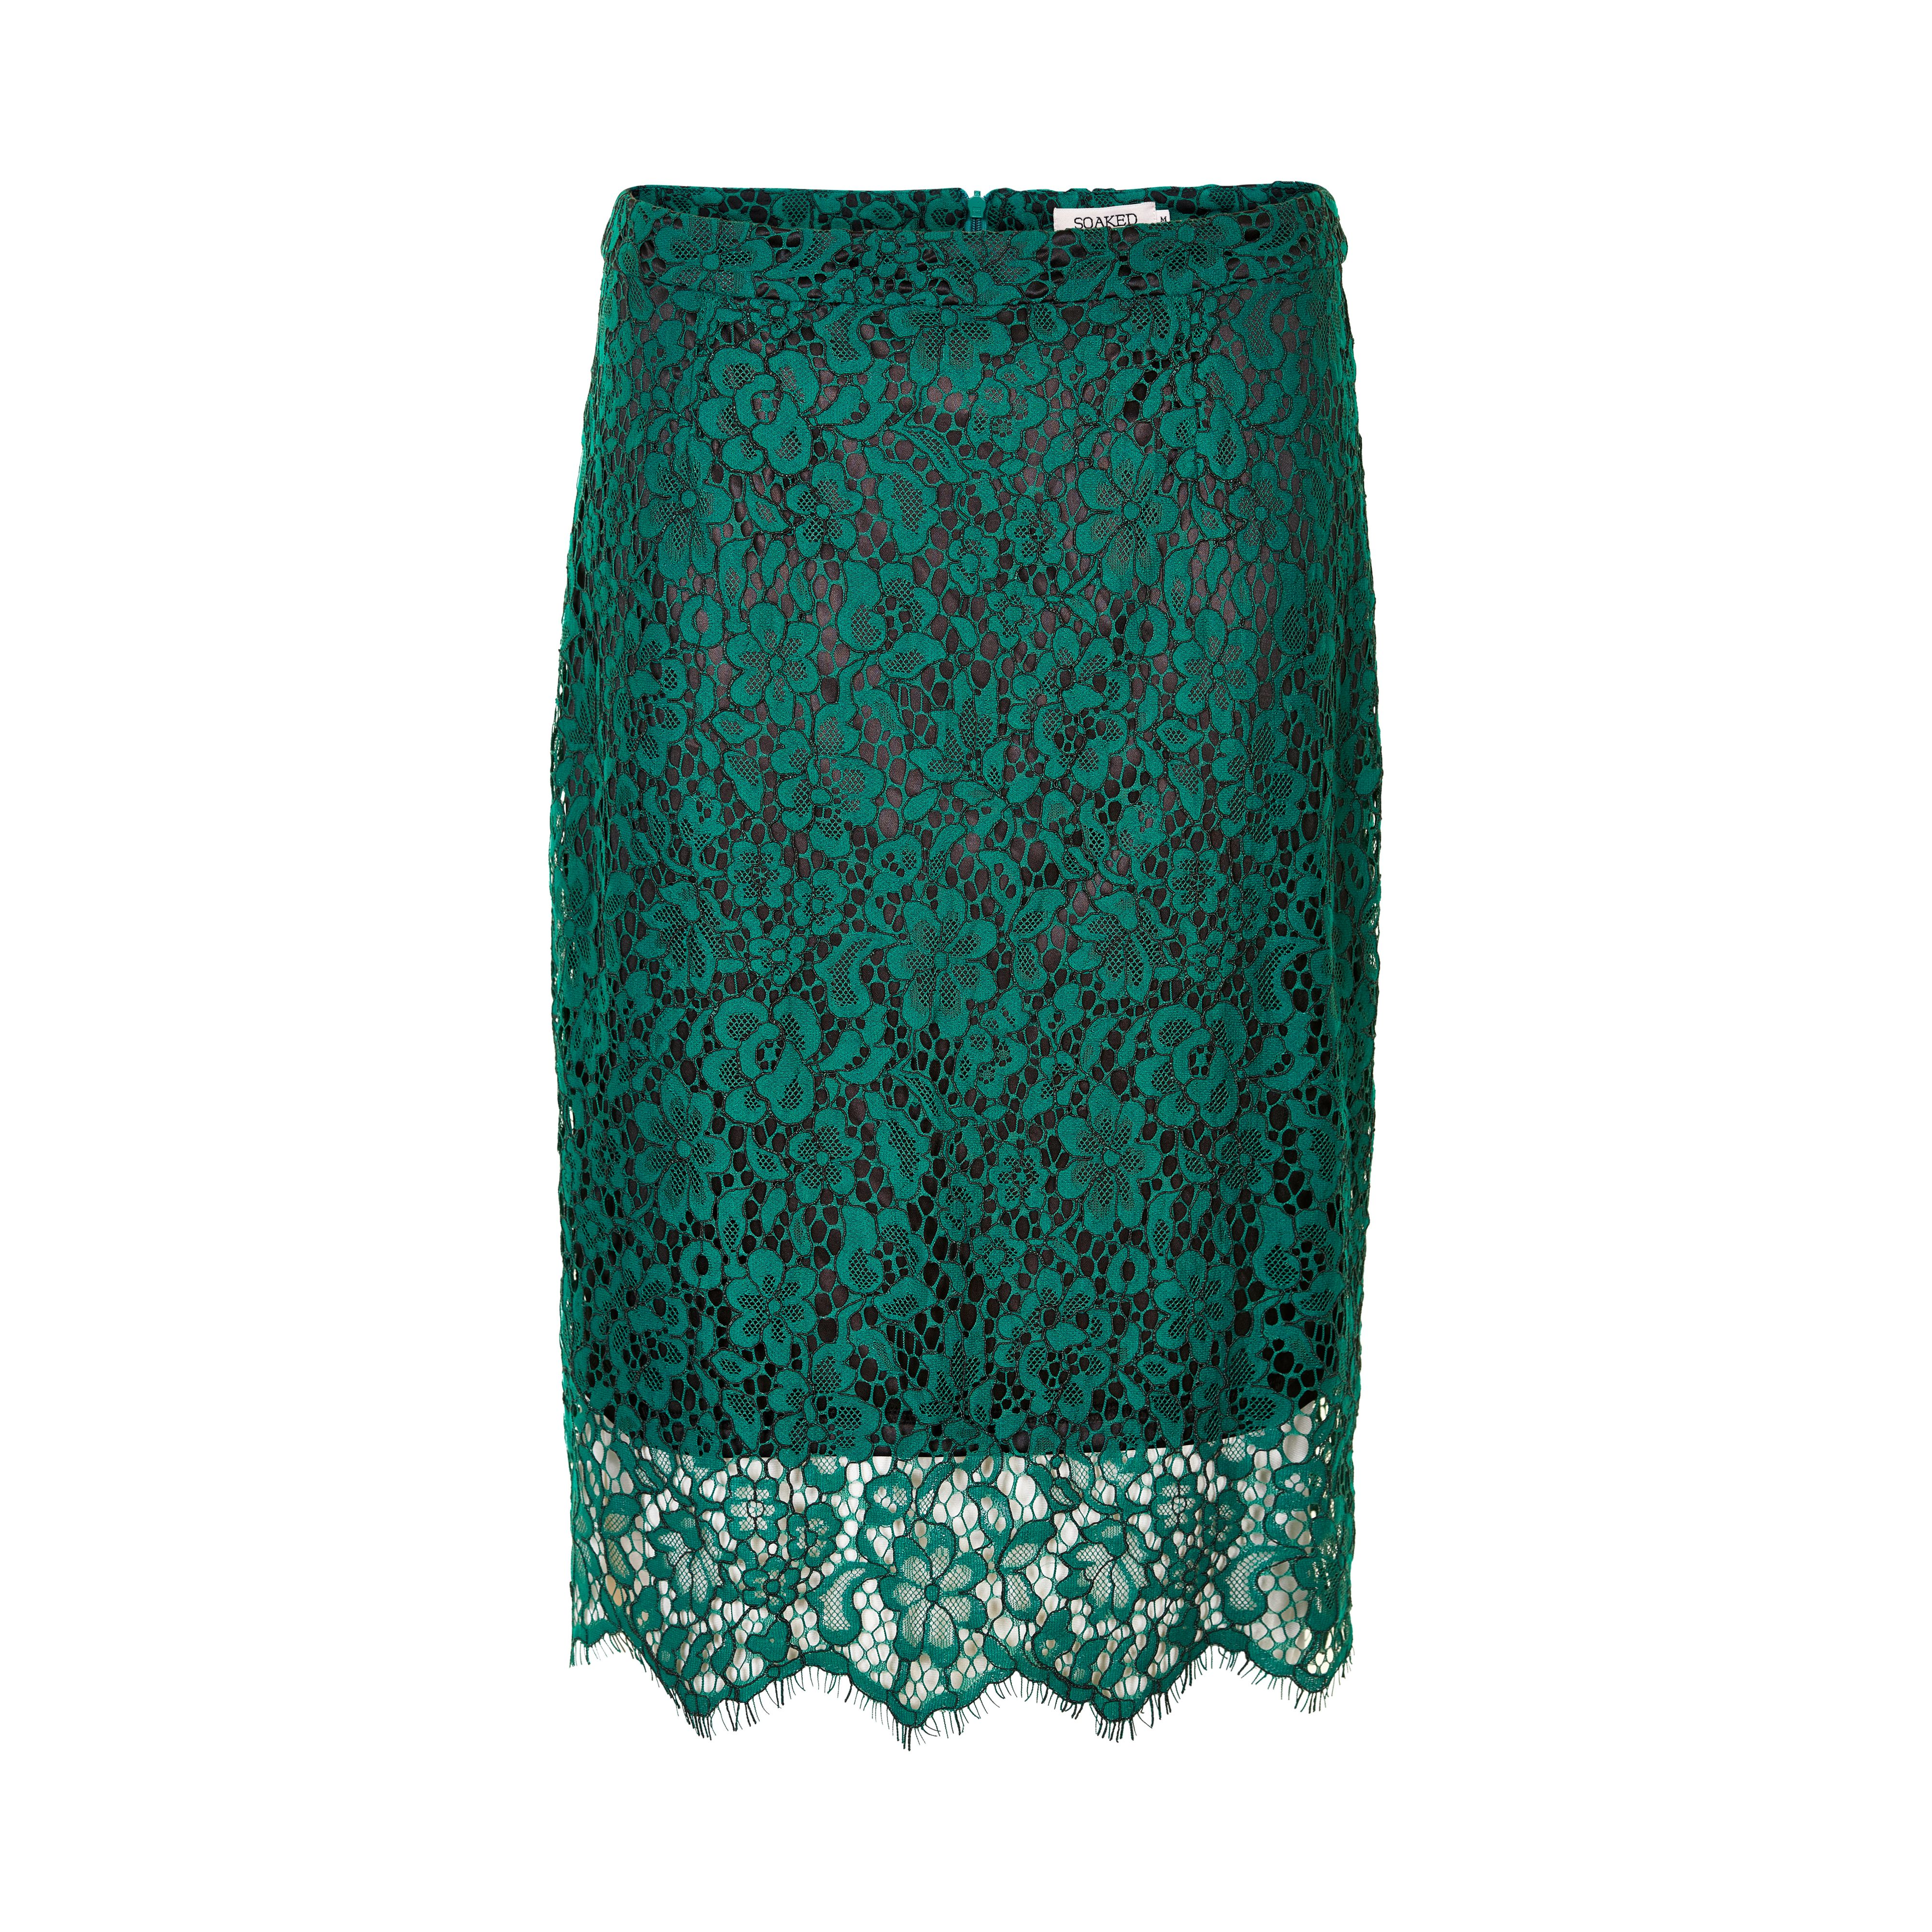 Soaked in Luxury Soaked in Luxury Ava Lace Skirt, Green